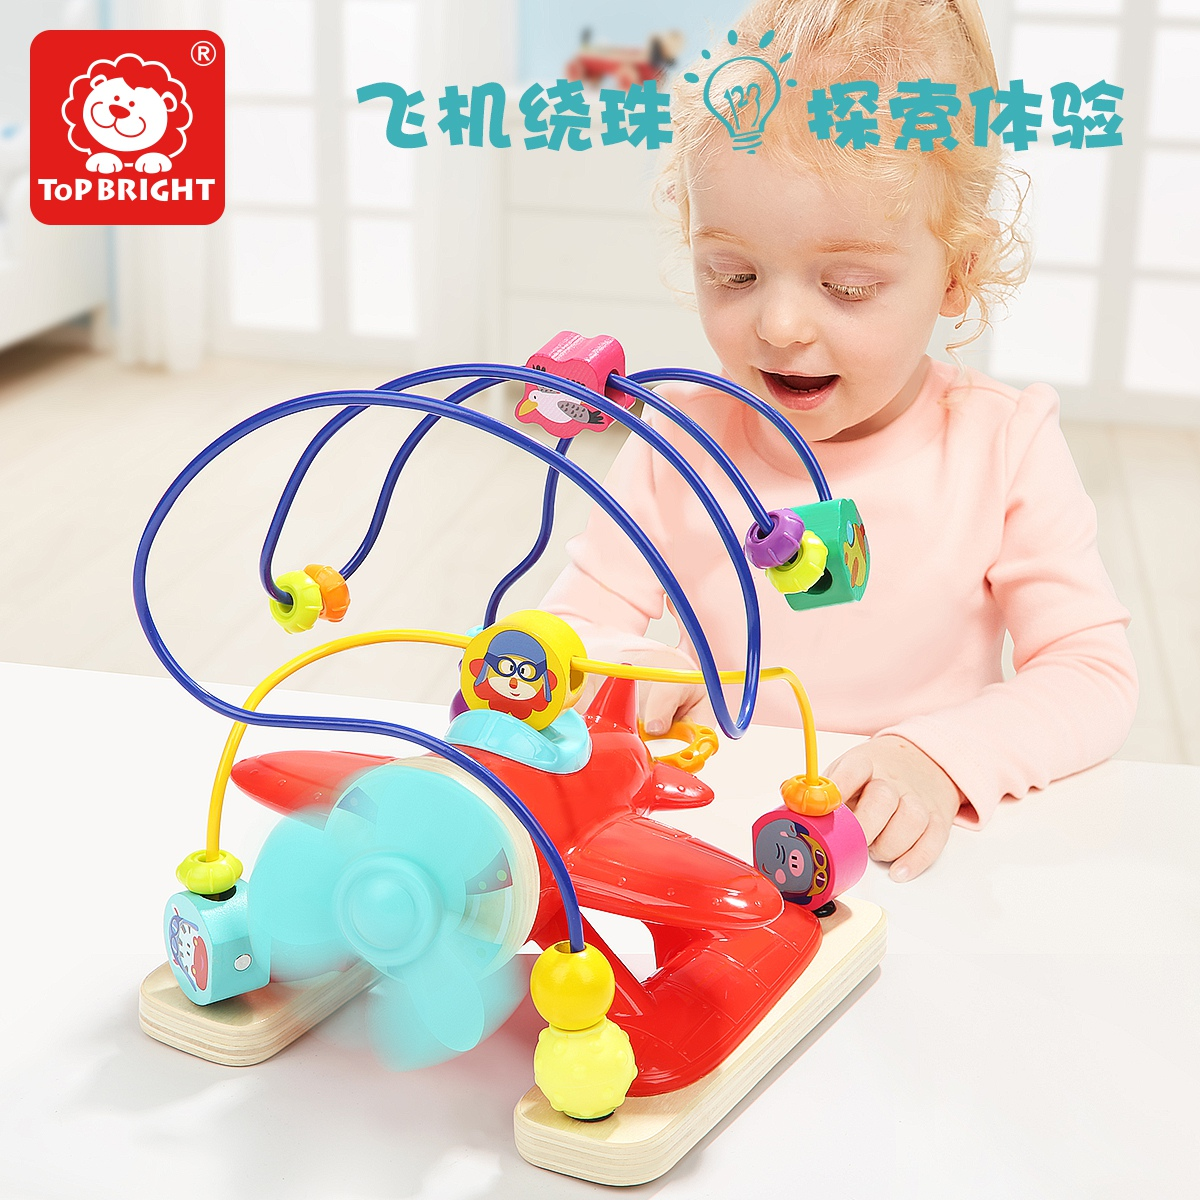 Tebauer Beaded children's puzzle toys 6-10 months old baby toys 1-2-3 years old building blocks